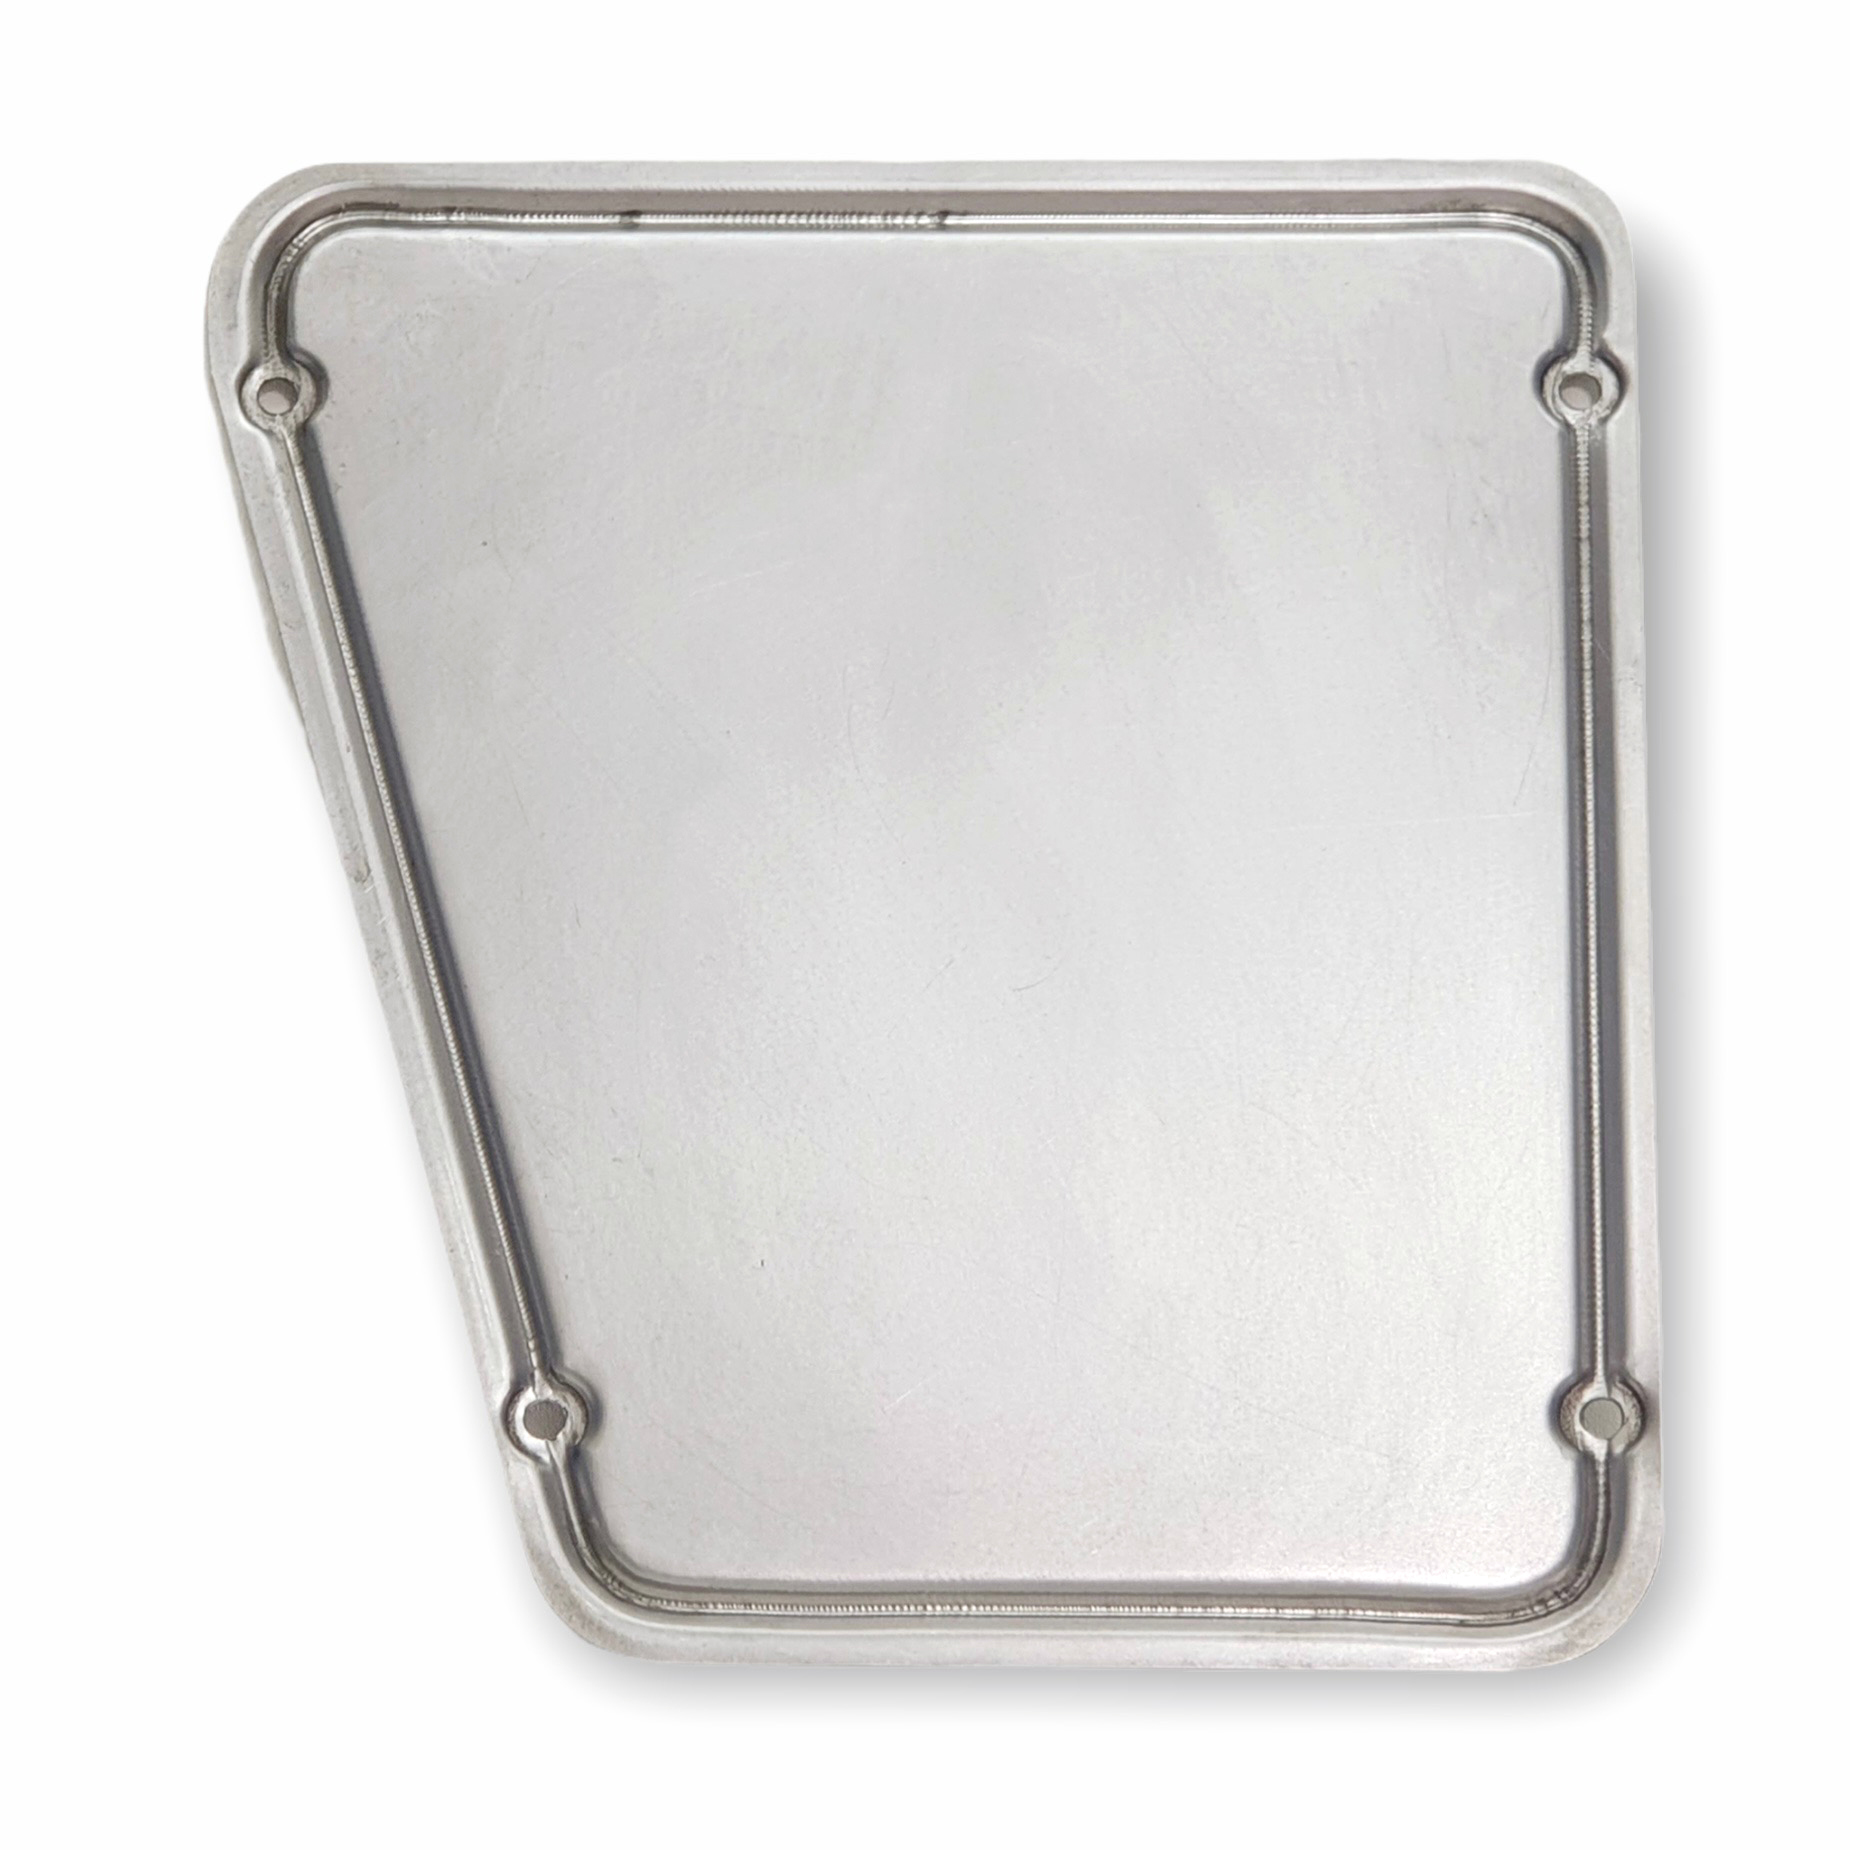 Steering box access cover panel 356- 356BT5 (LHD)